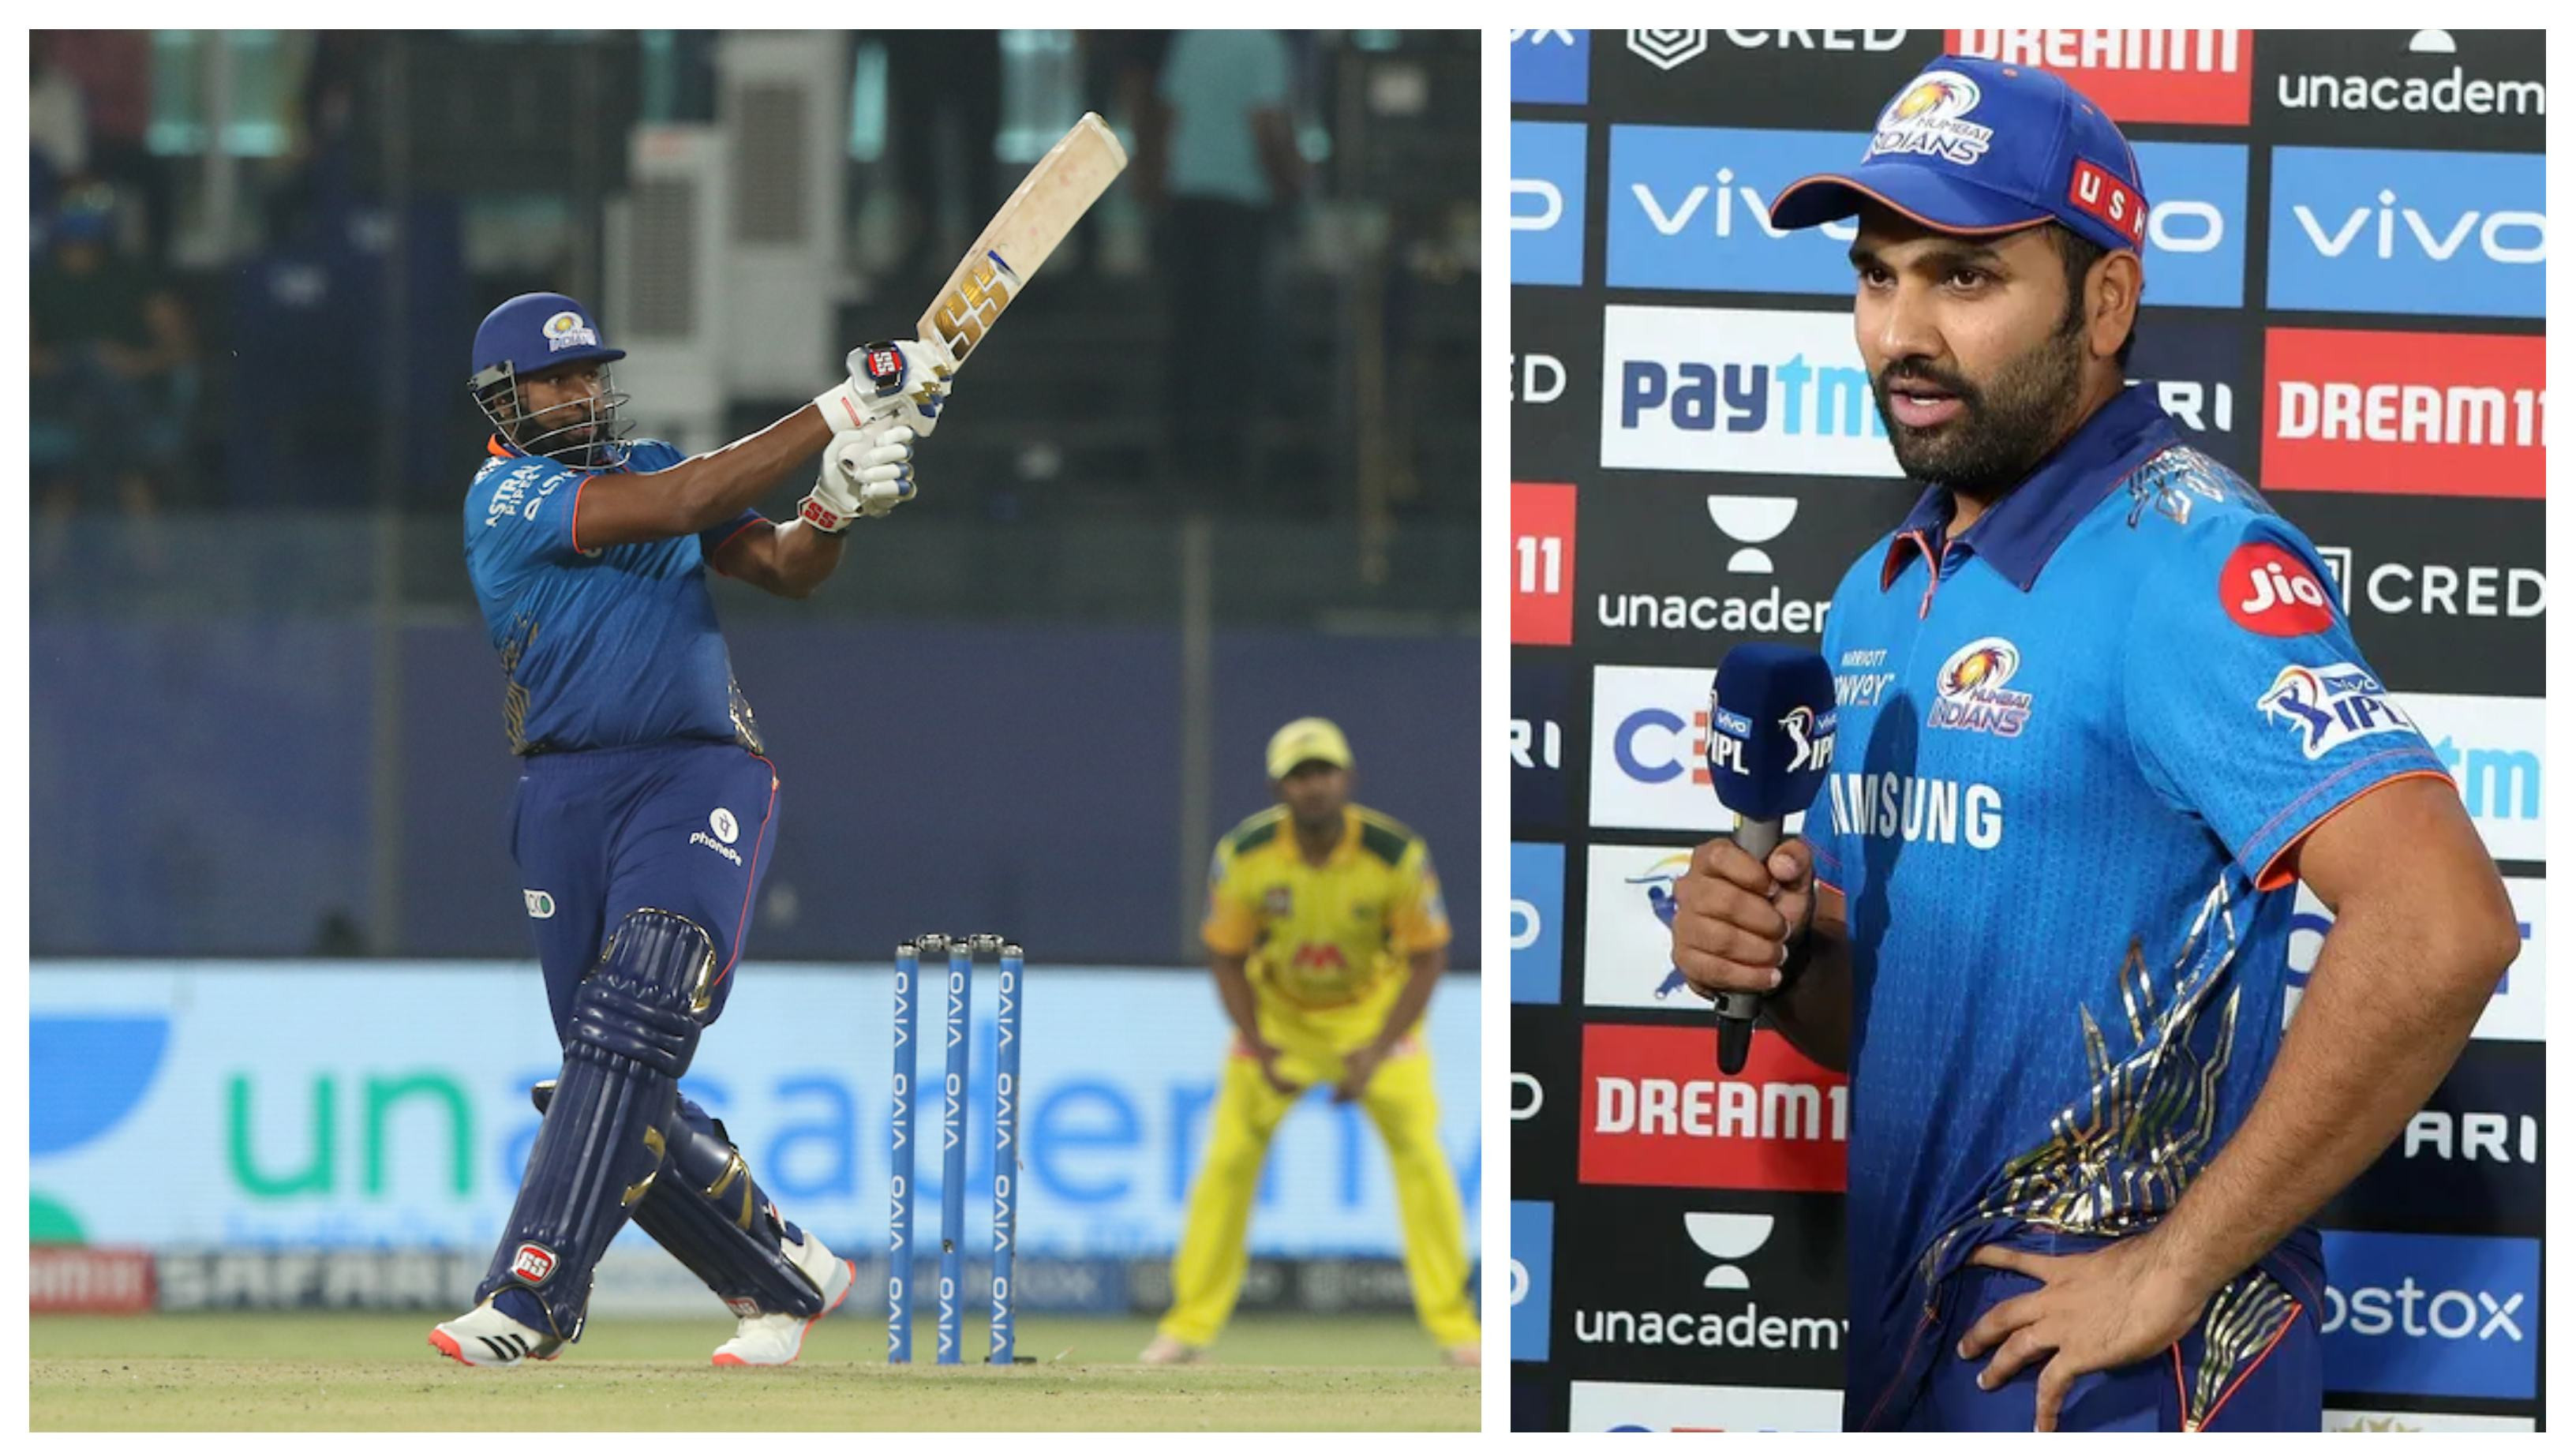 IPL 2021: 'Never seen a chase like that before, one of the best innings from Pollard', says Rohit Sharma